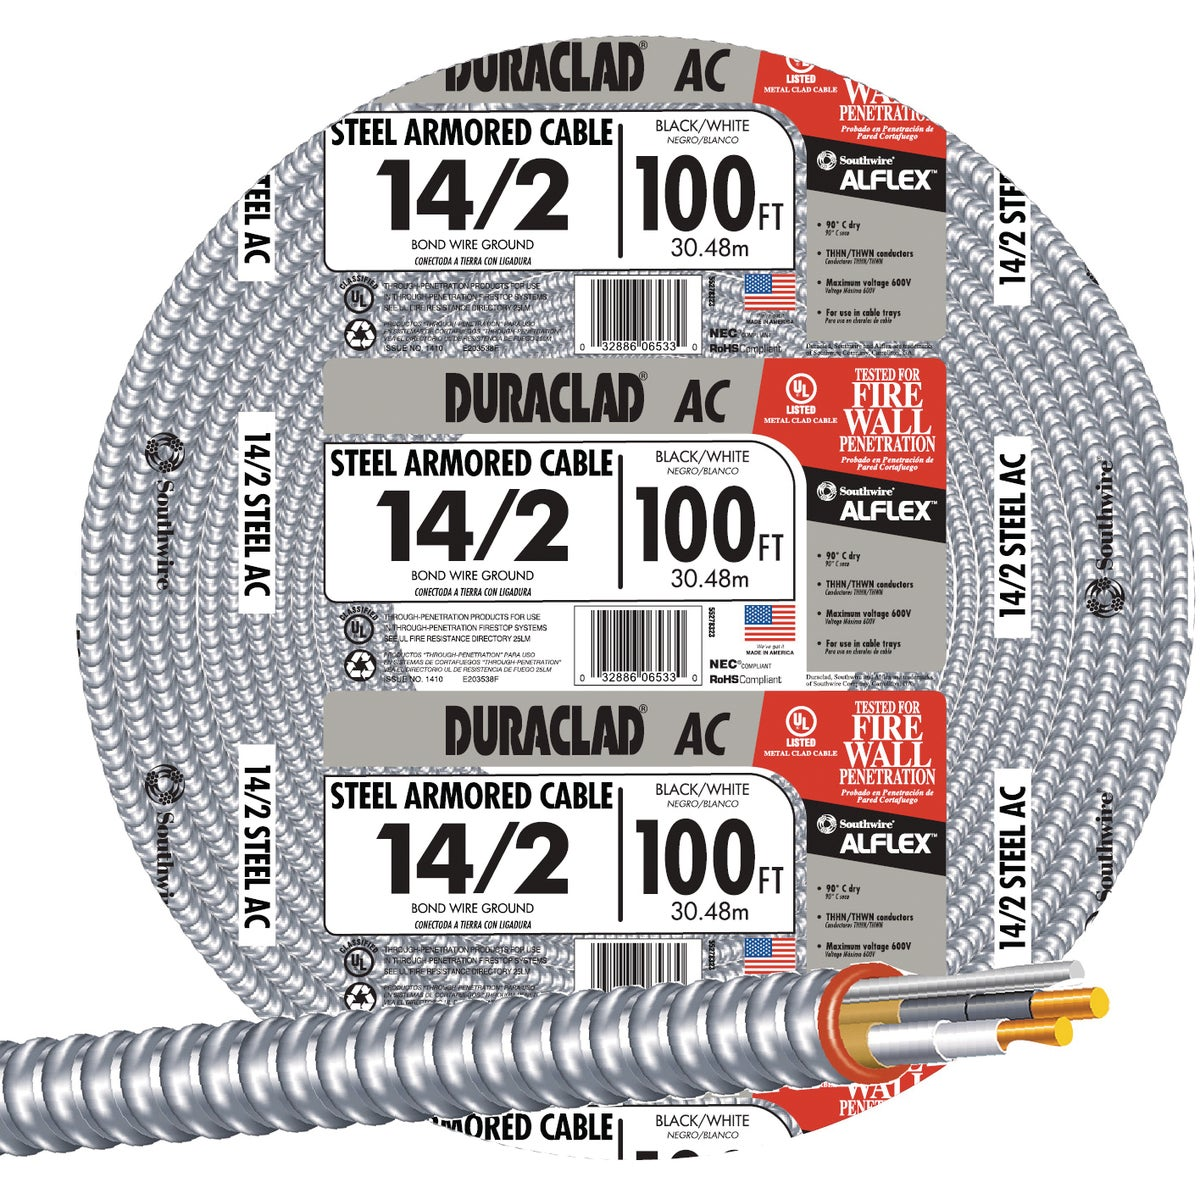 100' 14/2 STL ARMR CABLE